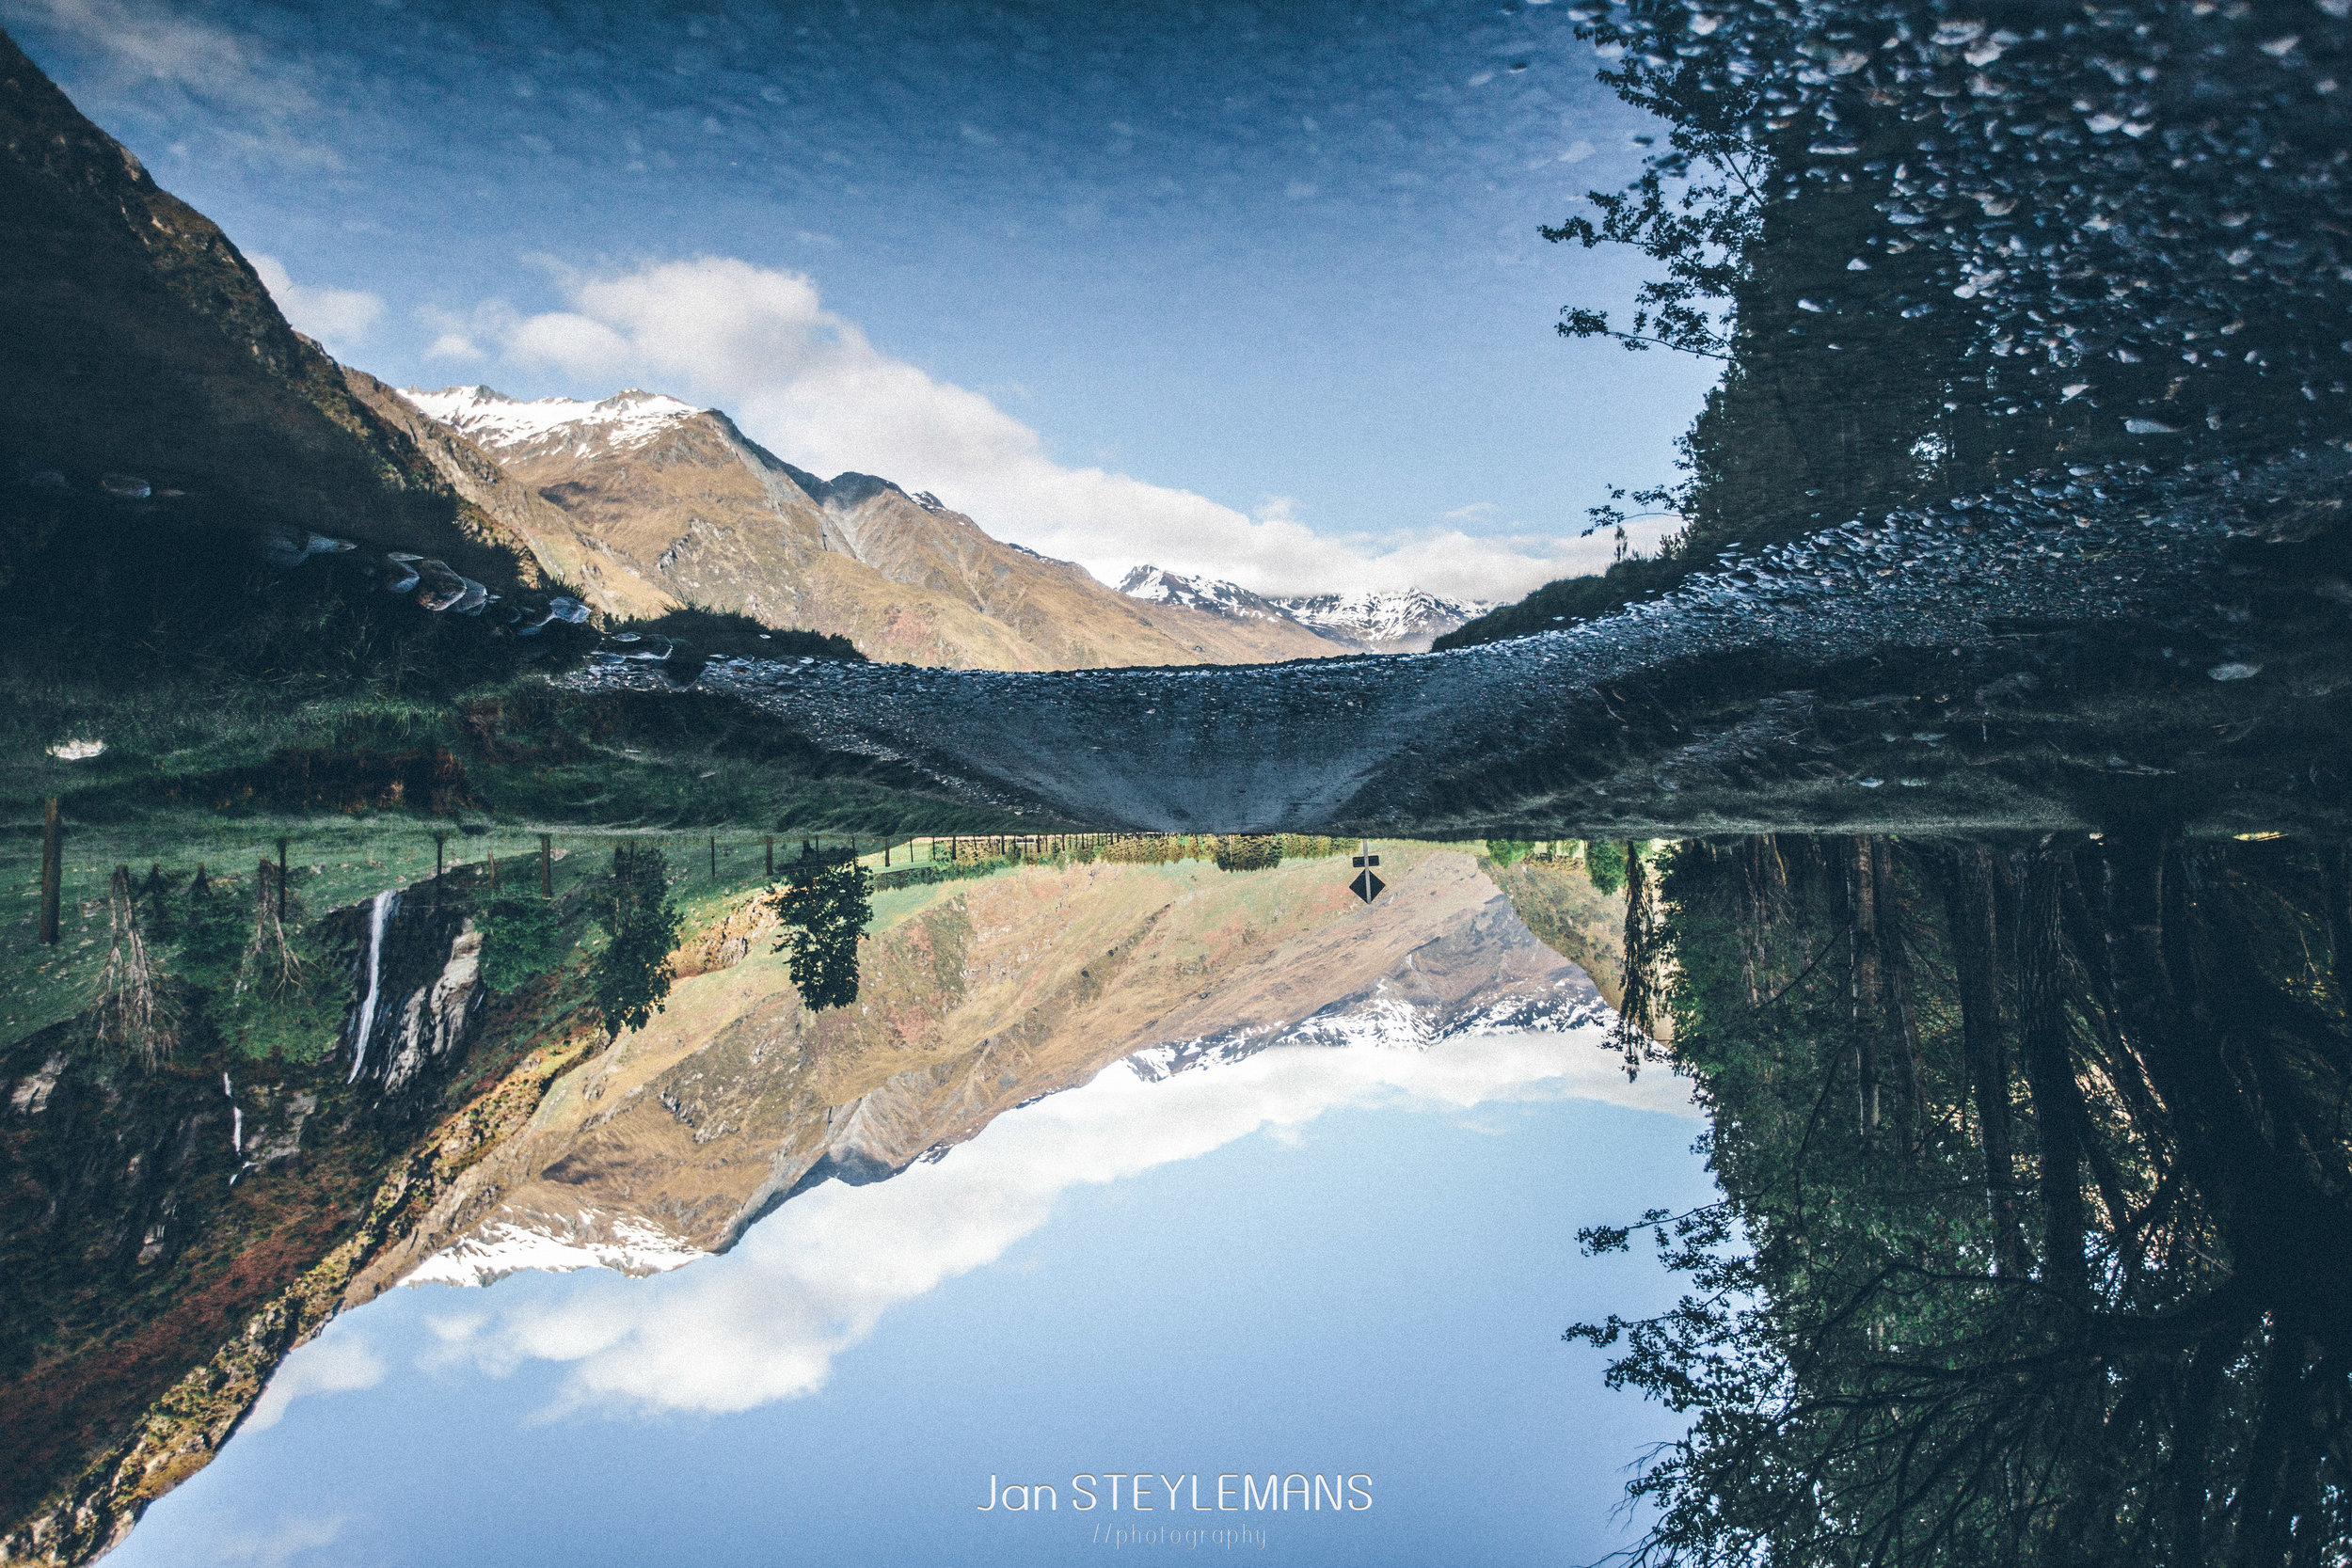 12. Mirror mirror, Mount Aspiring National Park, New Zealand